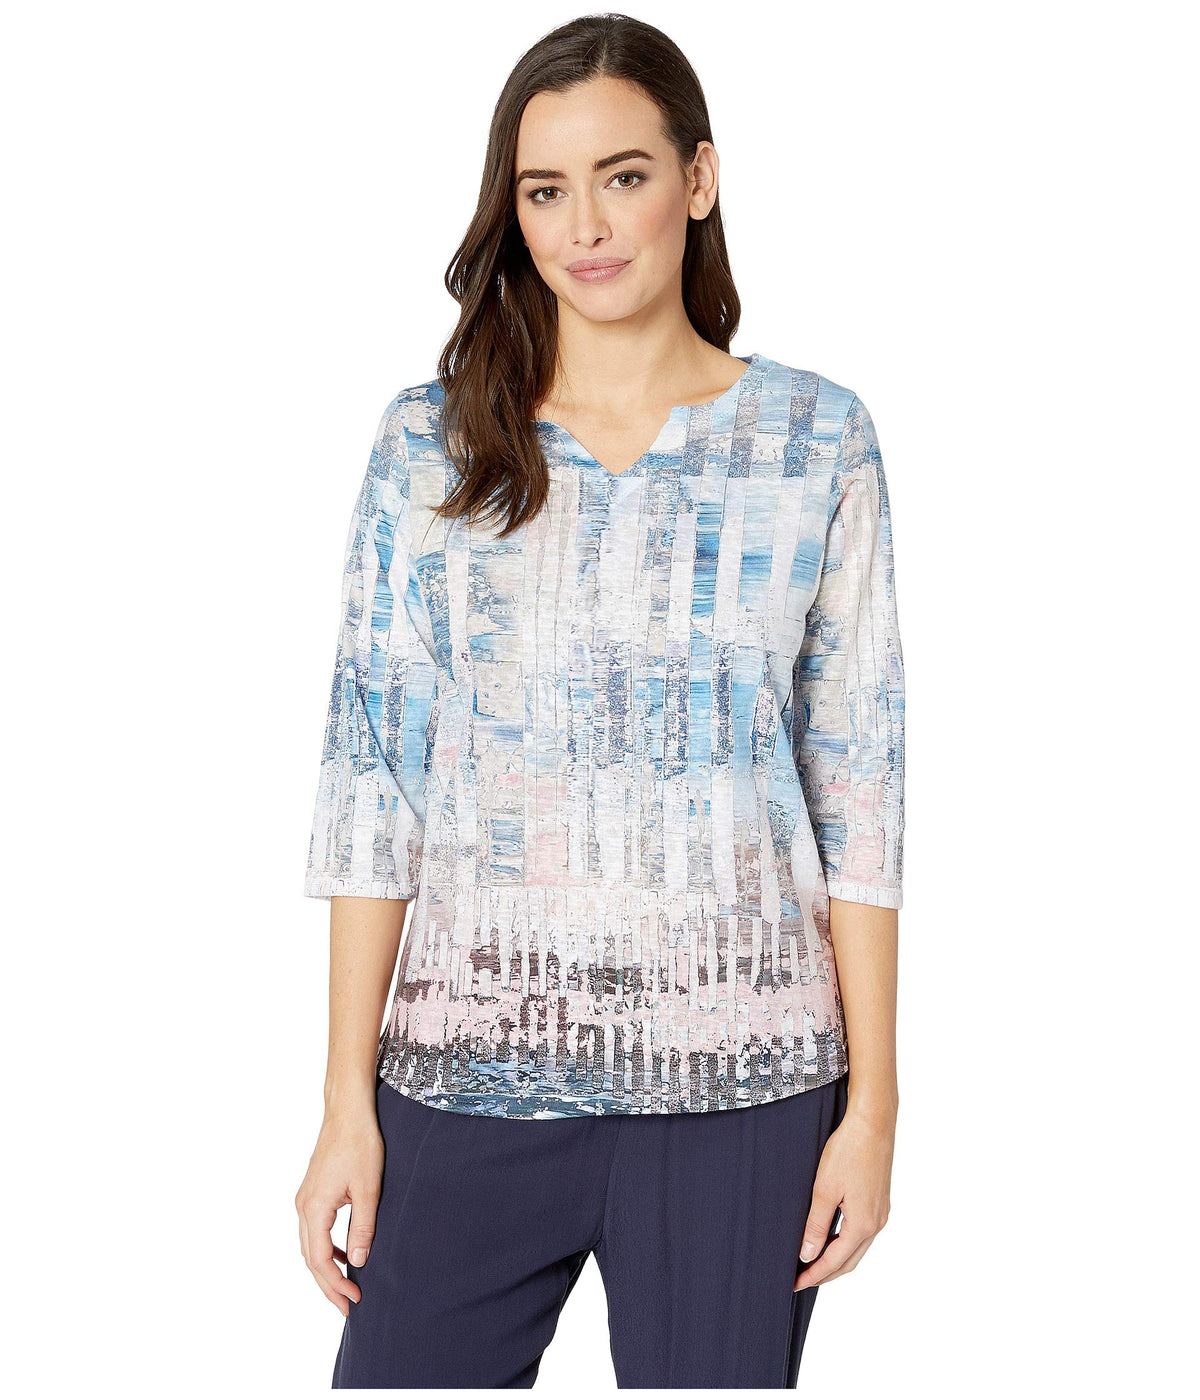 Printed Smooth Jersey Abstract Print Notched Crew Top